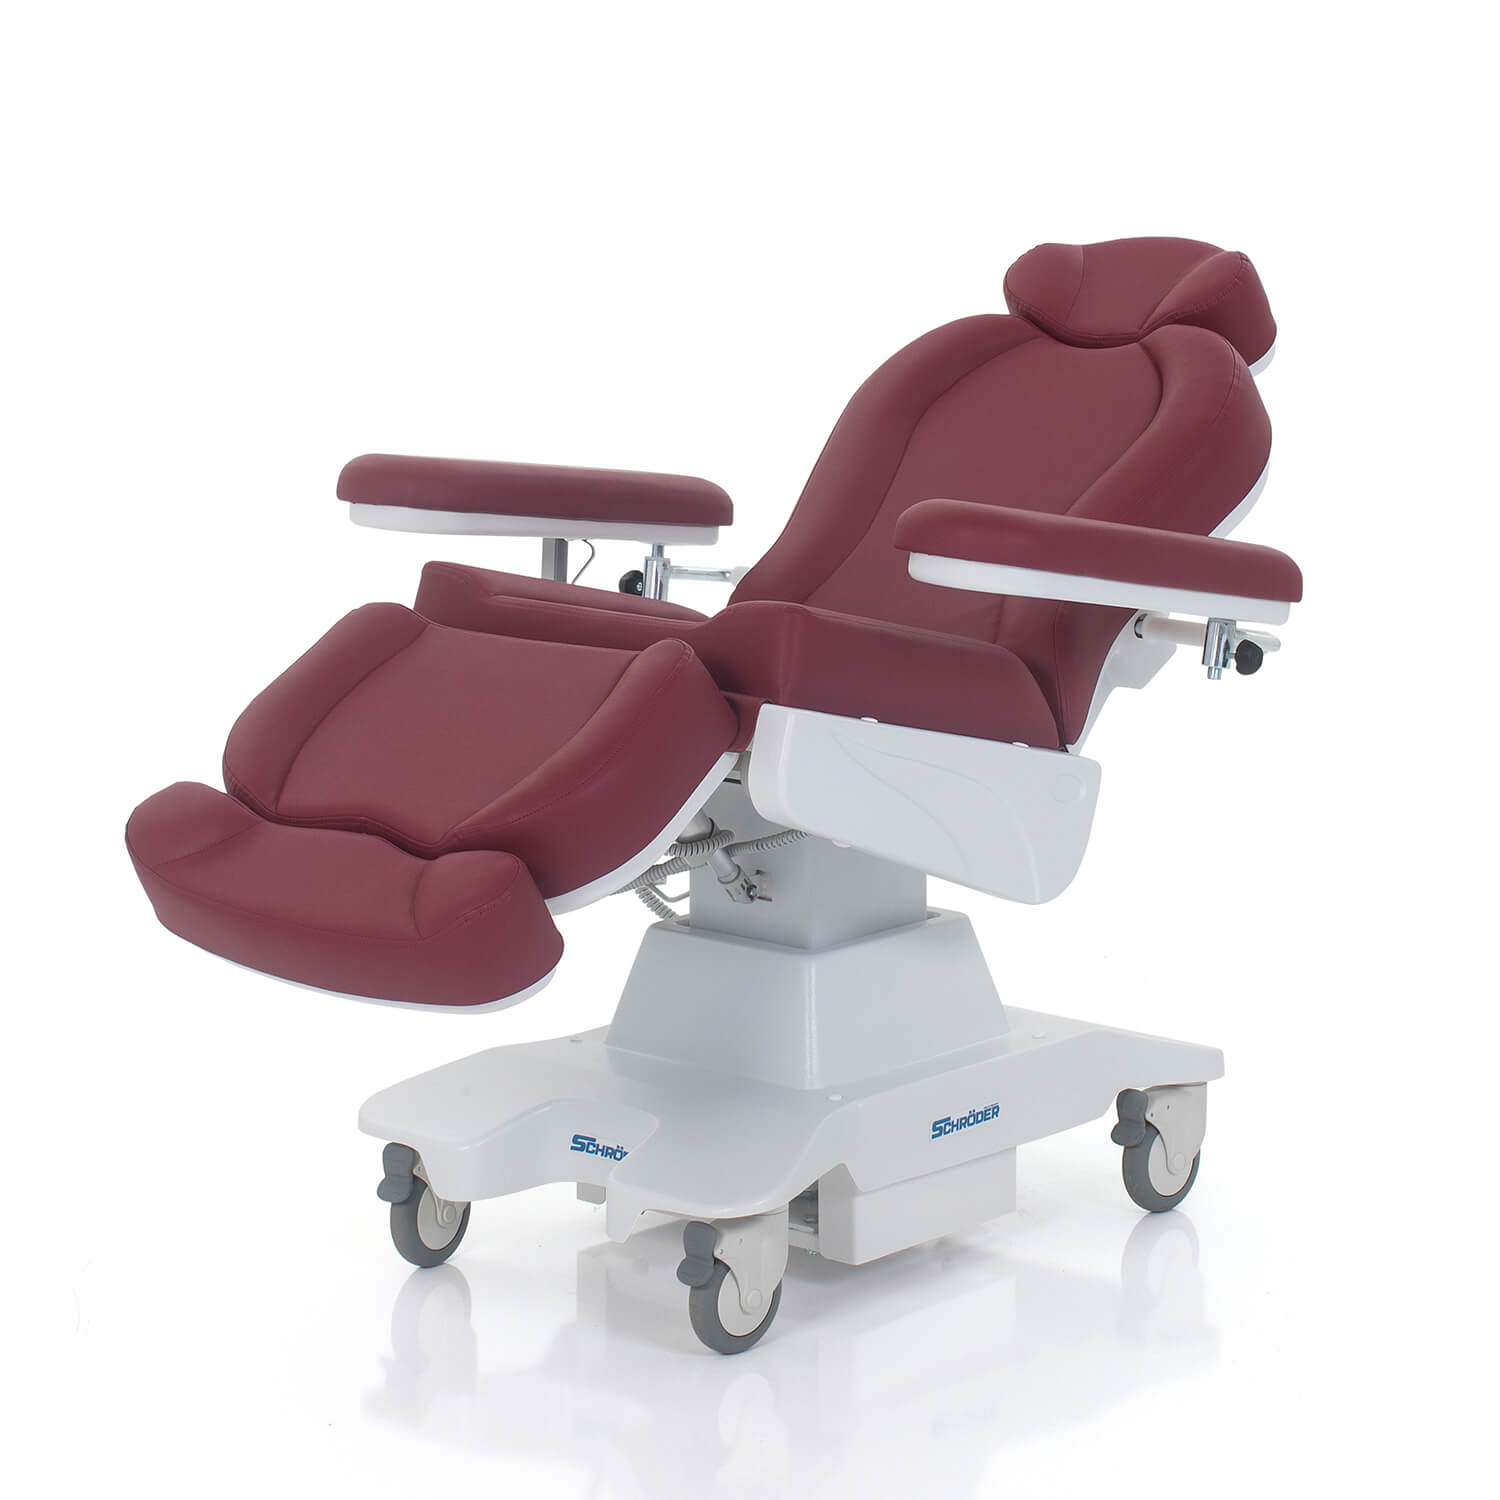 Electronic Blood Transfusion Chair, 4 Motors